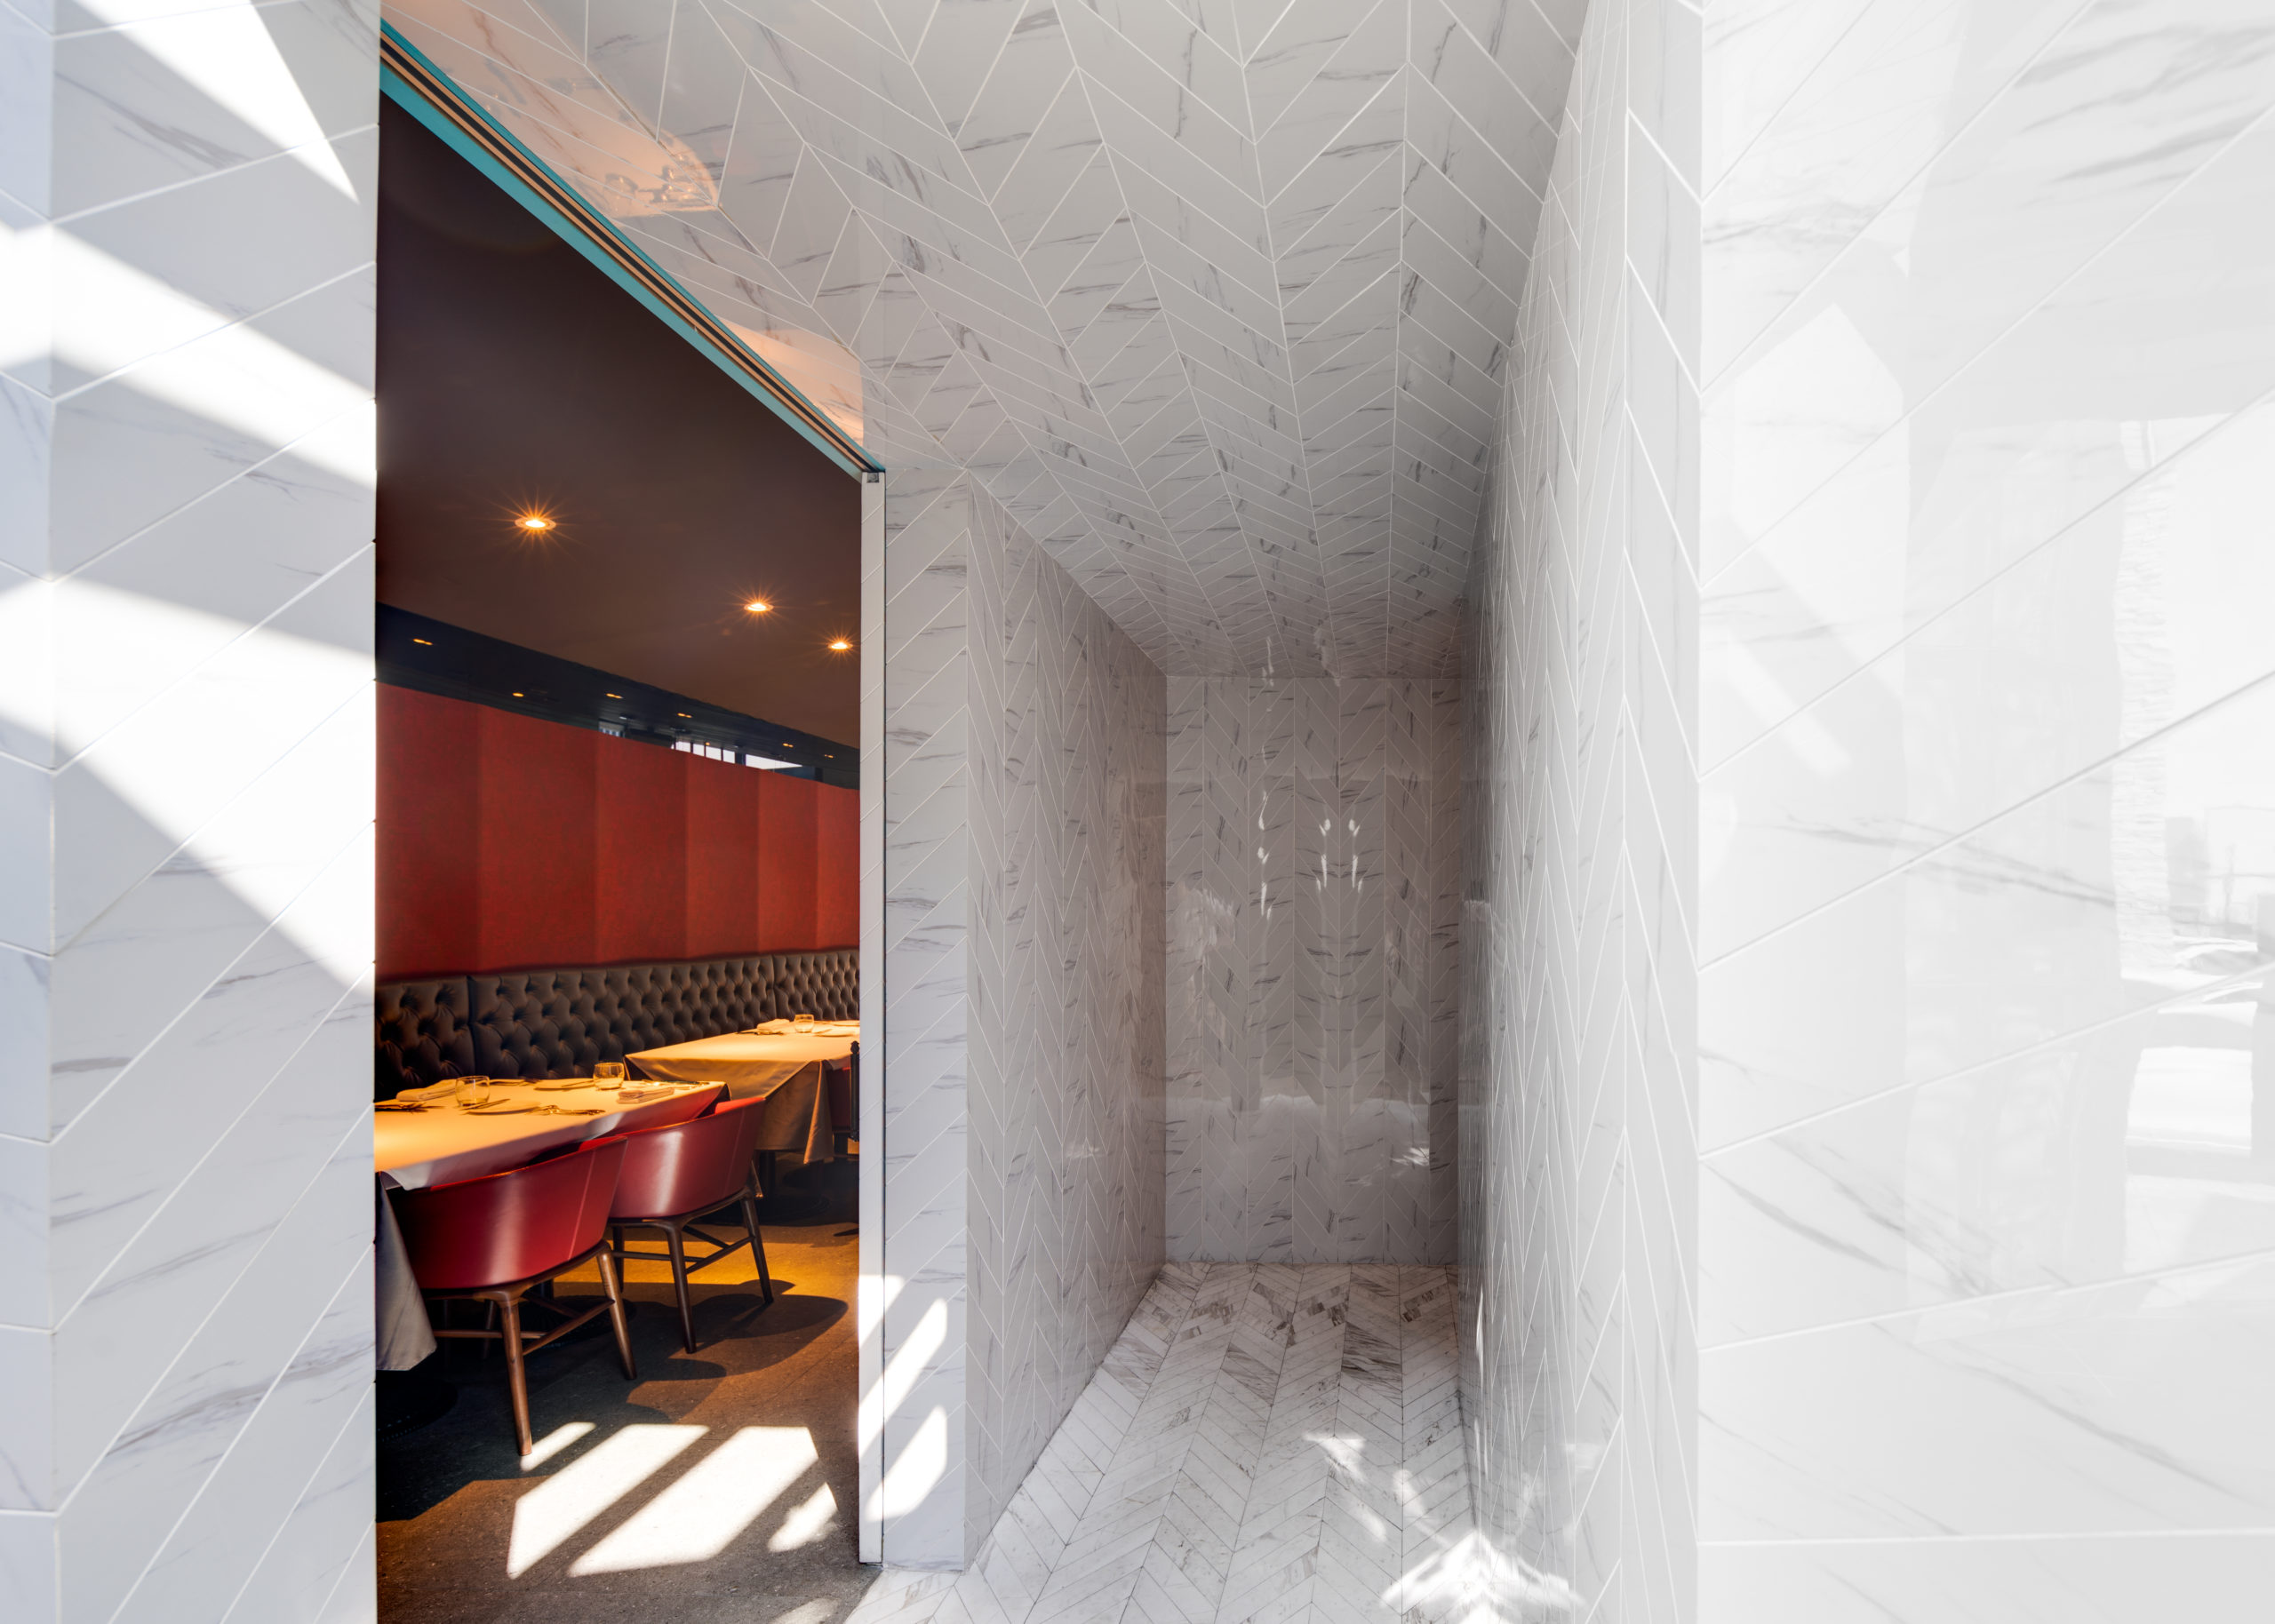 spatial practice architecture office Los Angeles Hong Kong fleur de sel restaurant taichung taiwan interior cleanser